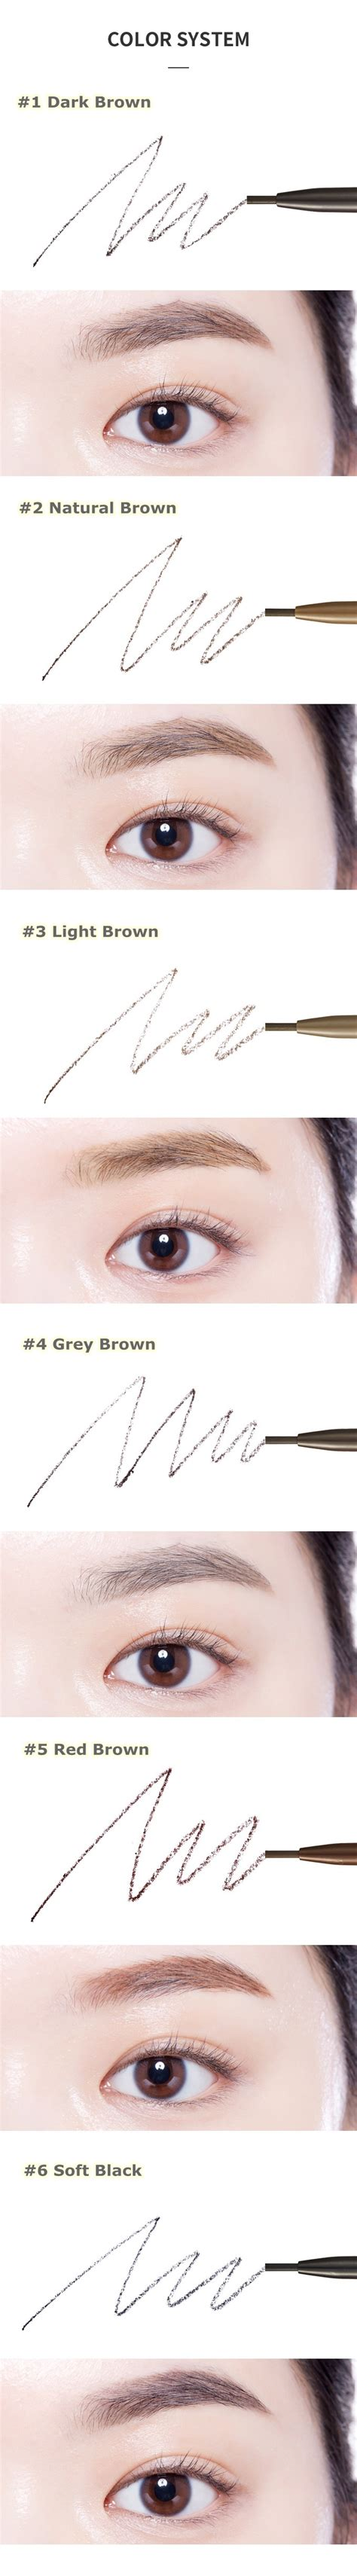 Harga Etude House Eyebrow etude house drawing eye brow 1dark brown daftar harga